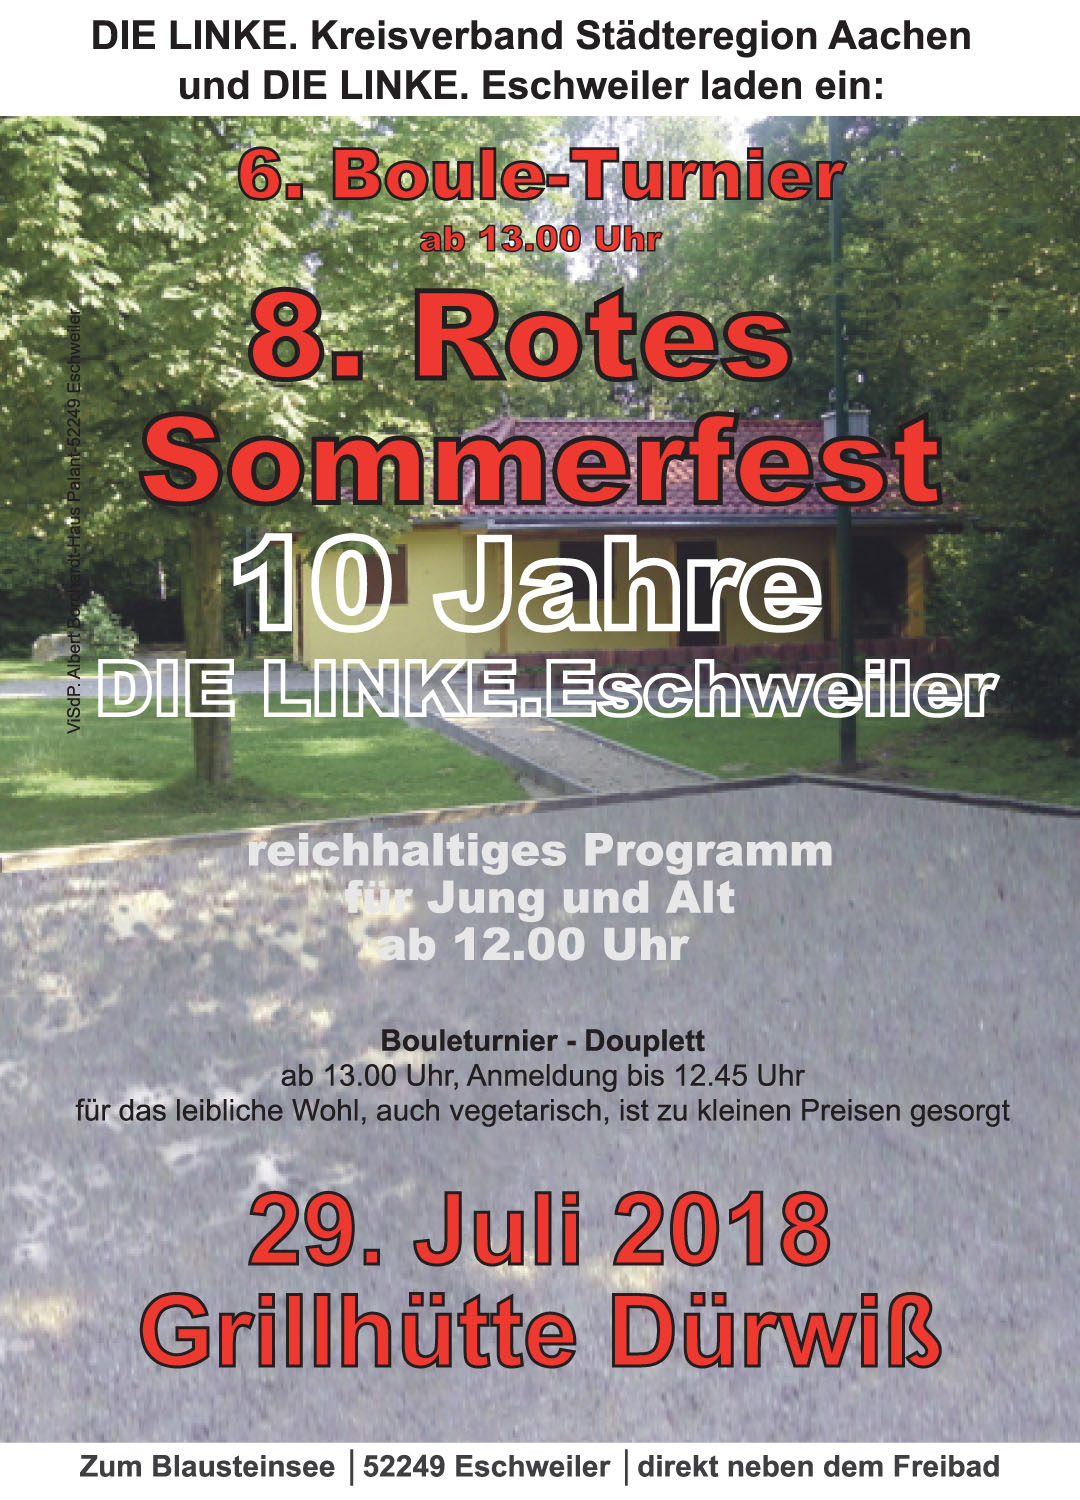 Rotes Sommerfest